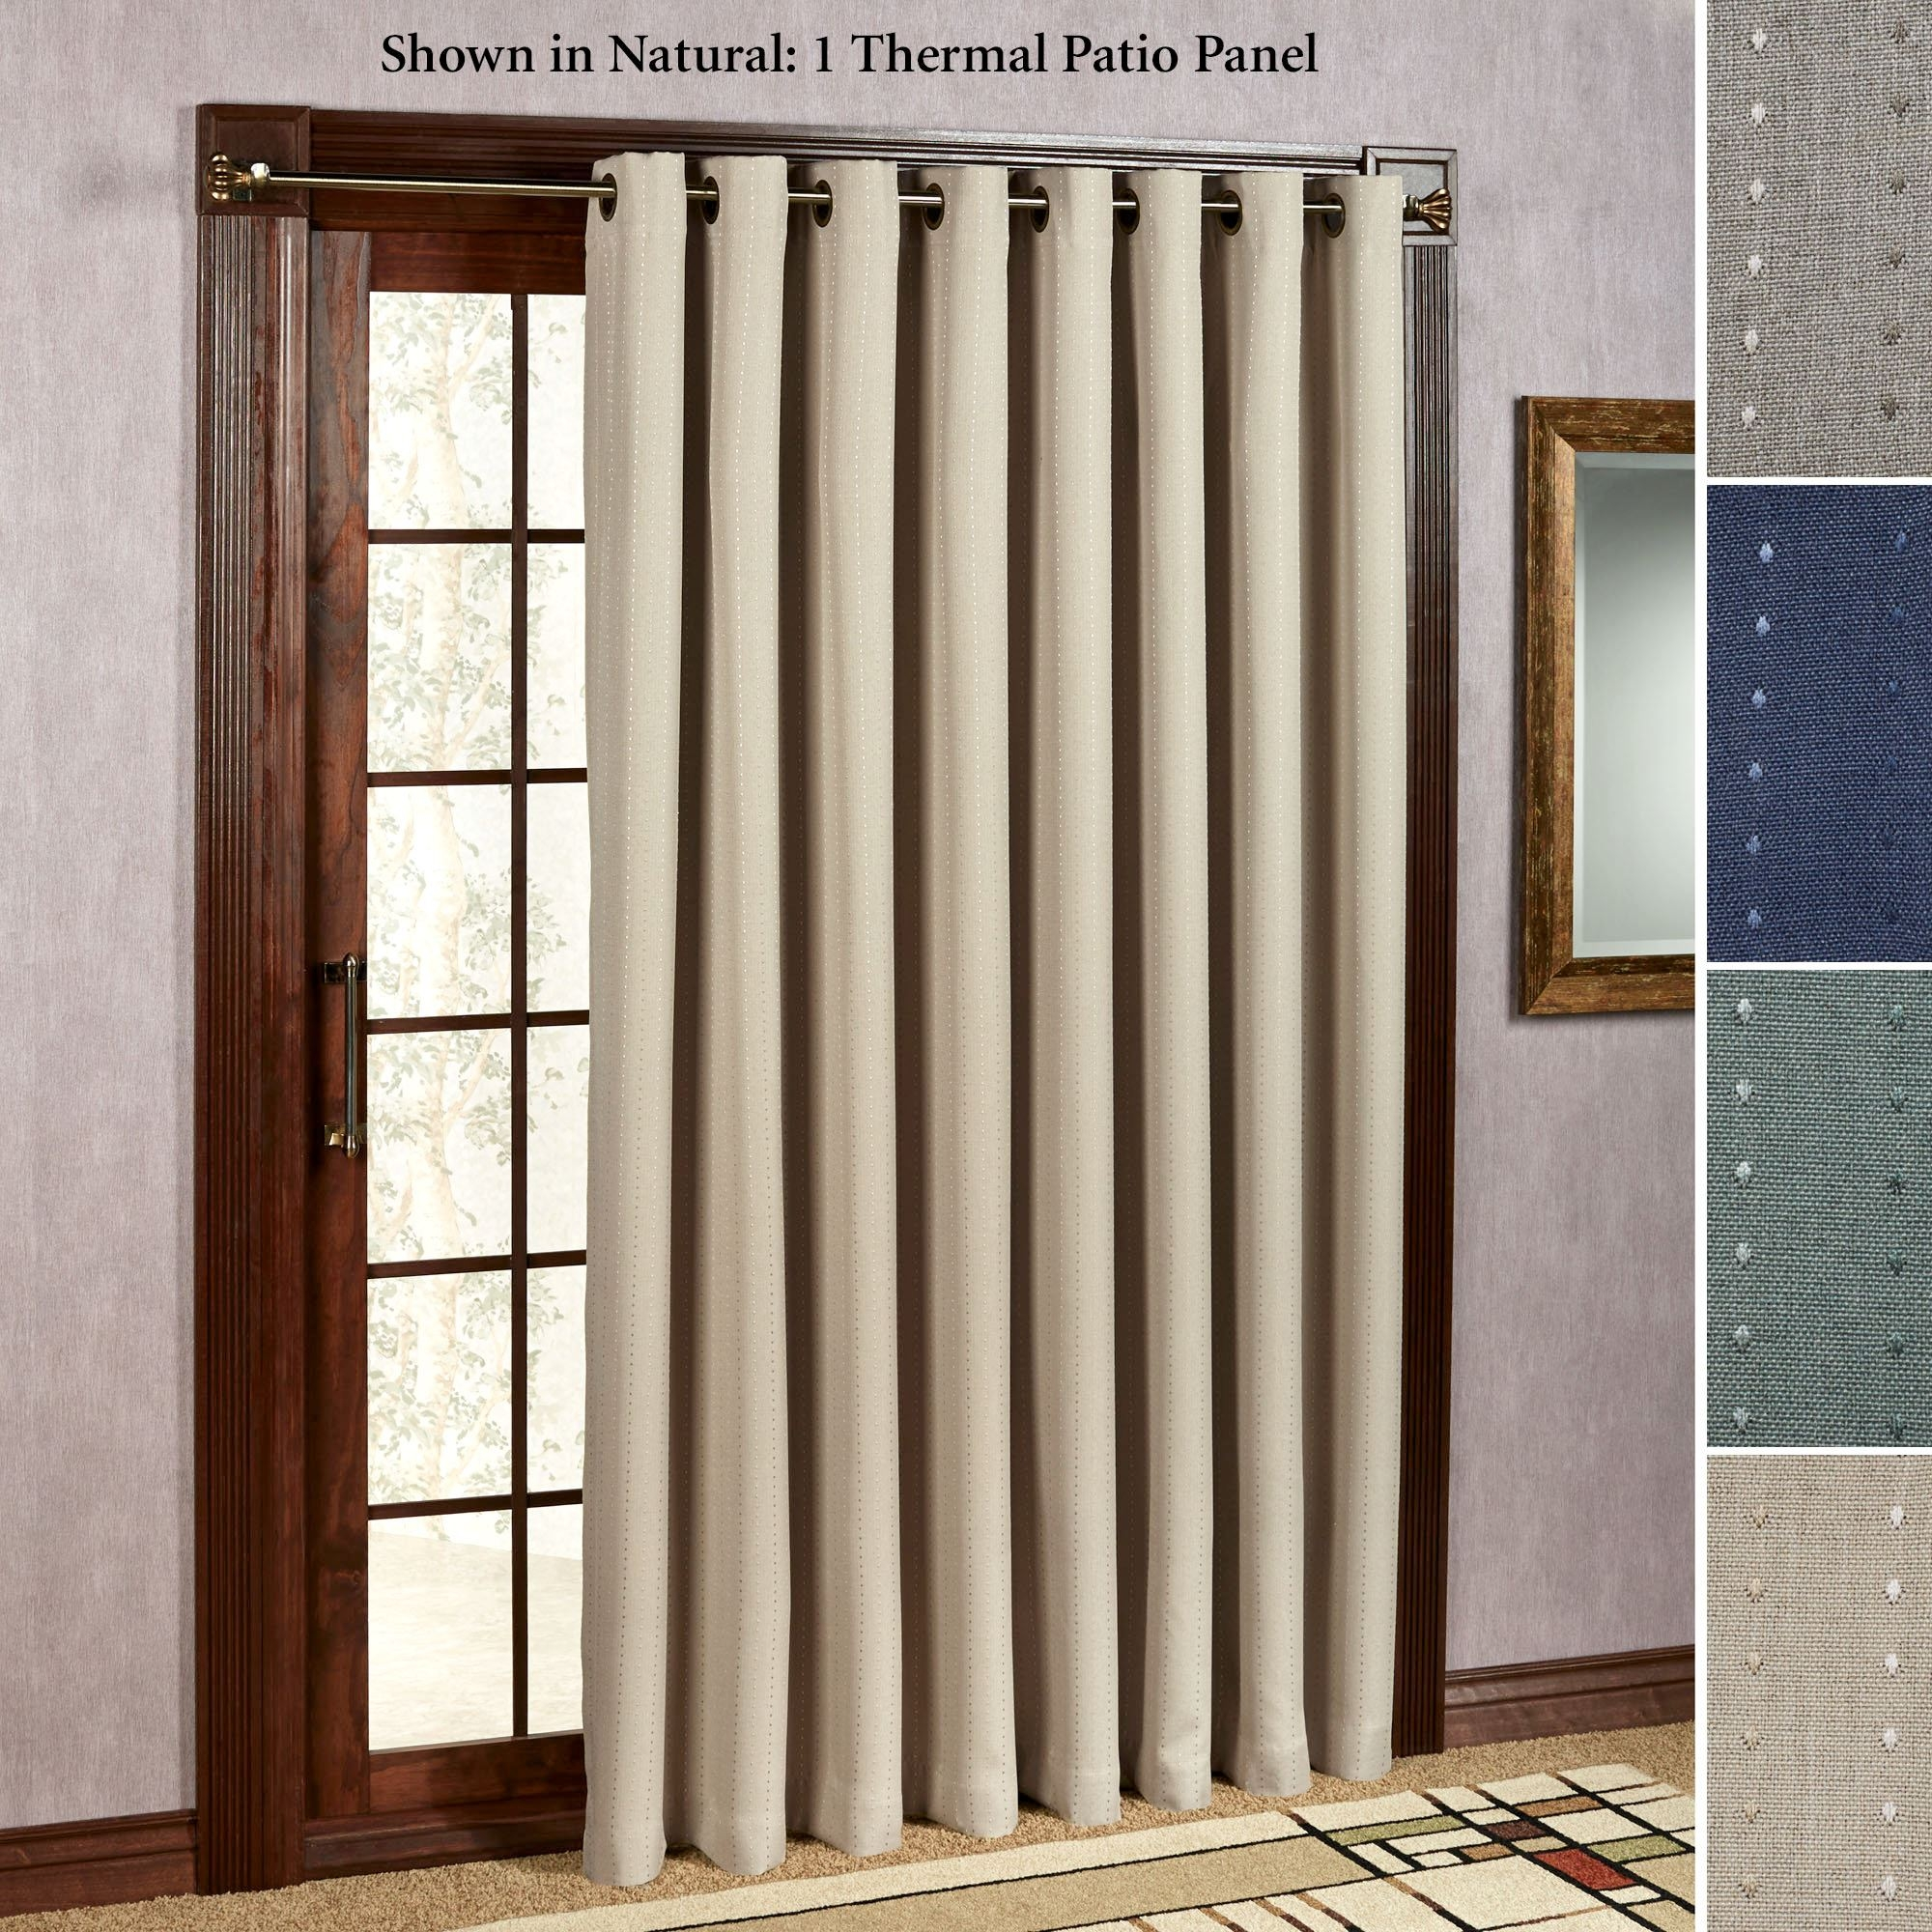 Sliding Glass Door Size Curtainspatio doors patio door curtain panels touch of class curtains for